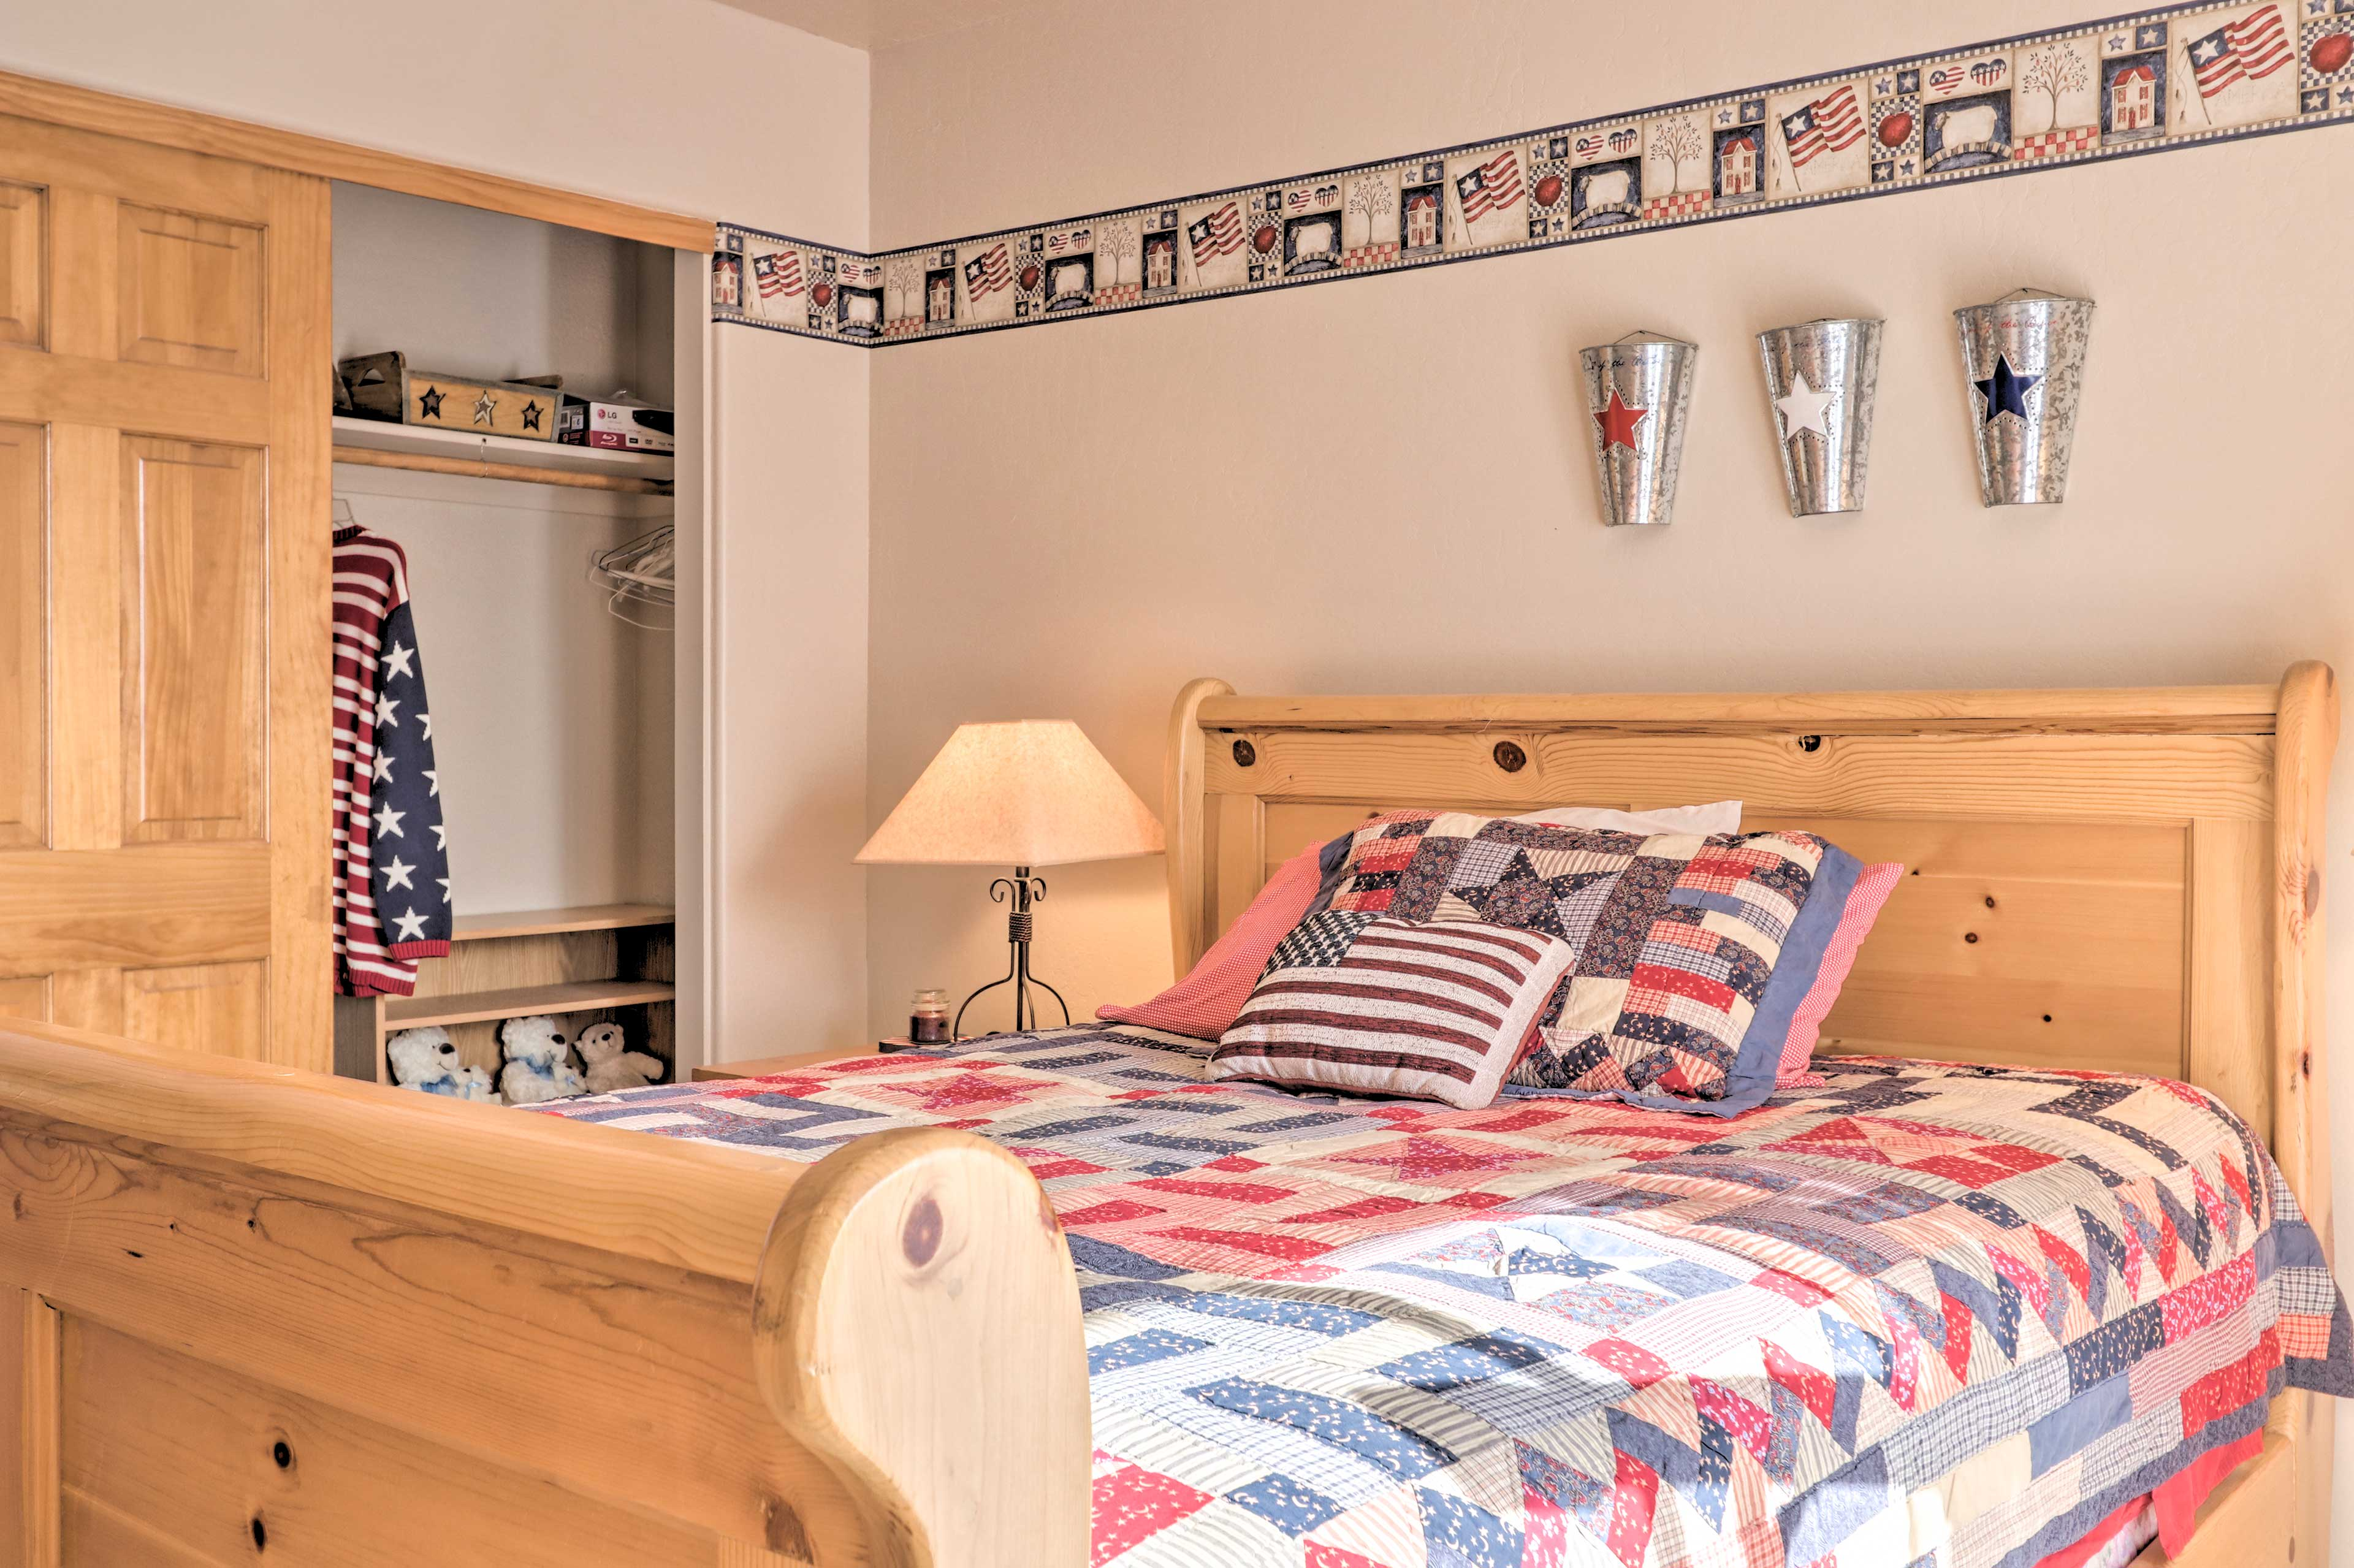 This patriotic room also has plenty of closet space for your belongings.